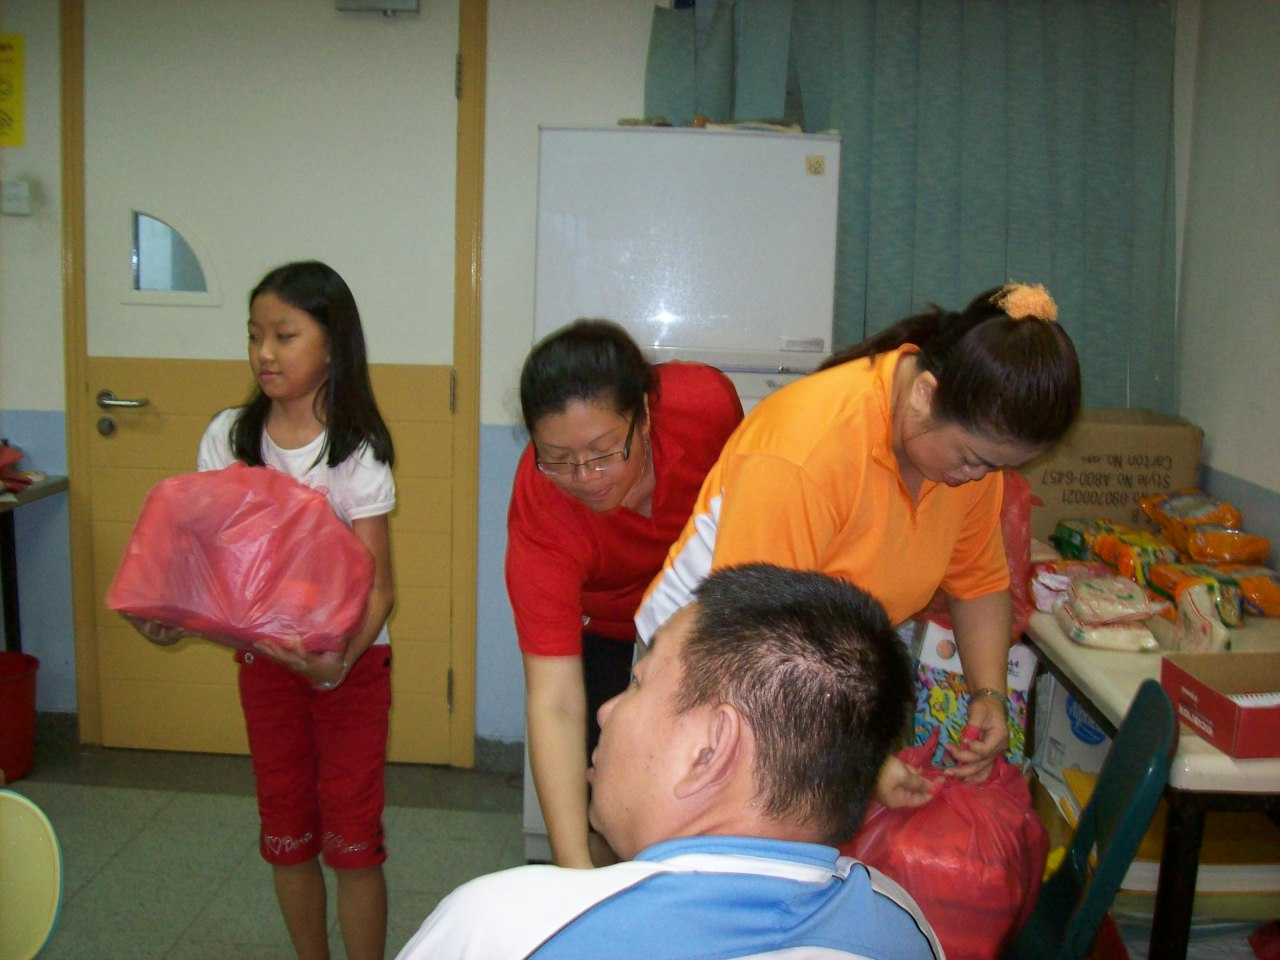 WHAMPOA: Food Ration Healthy Cooking Demonstration